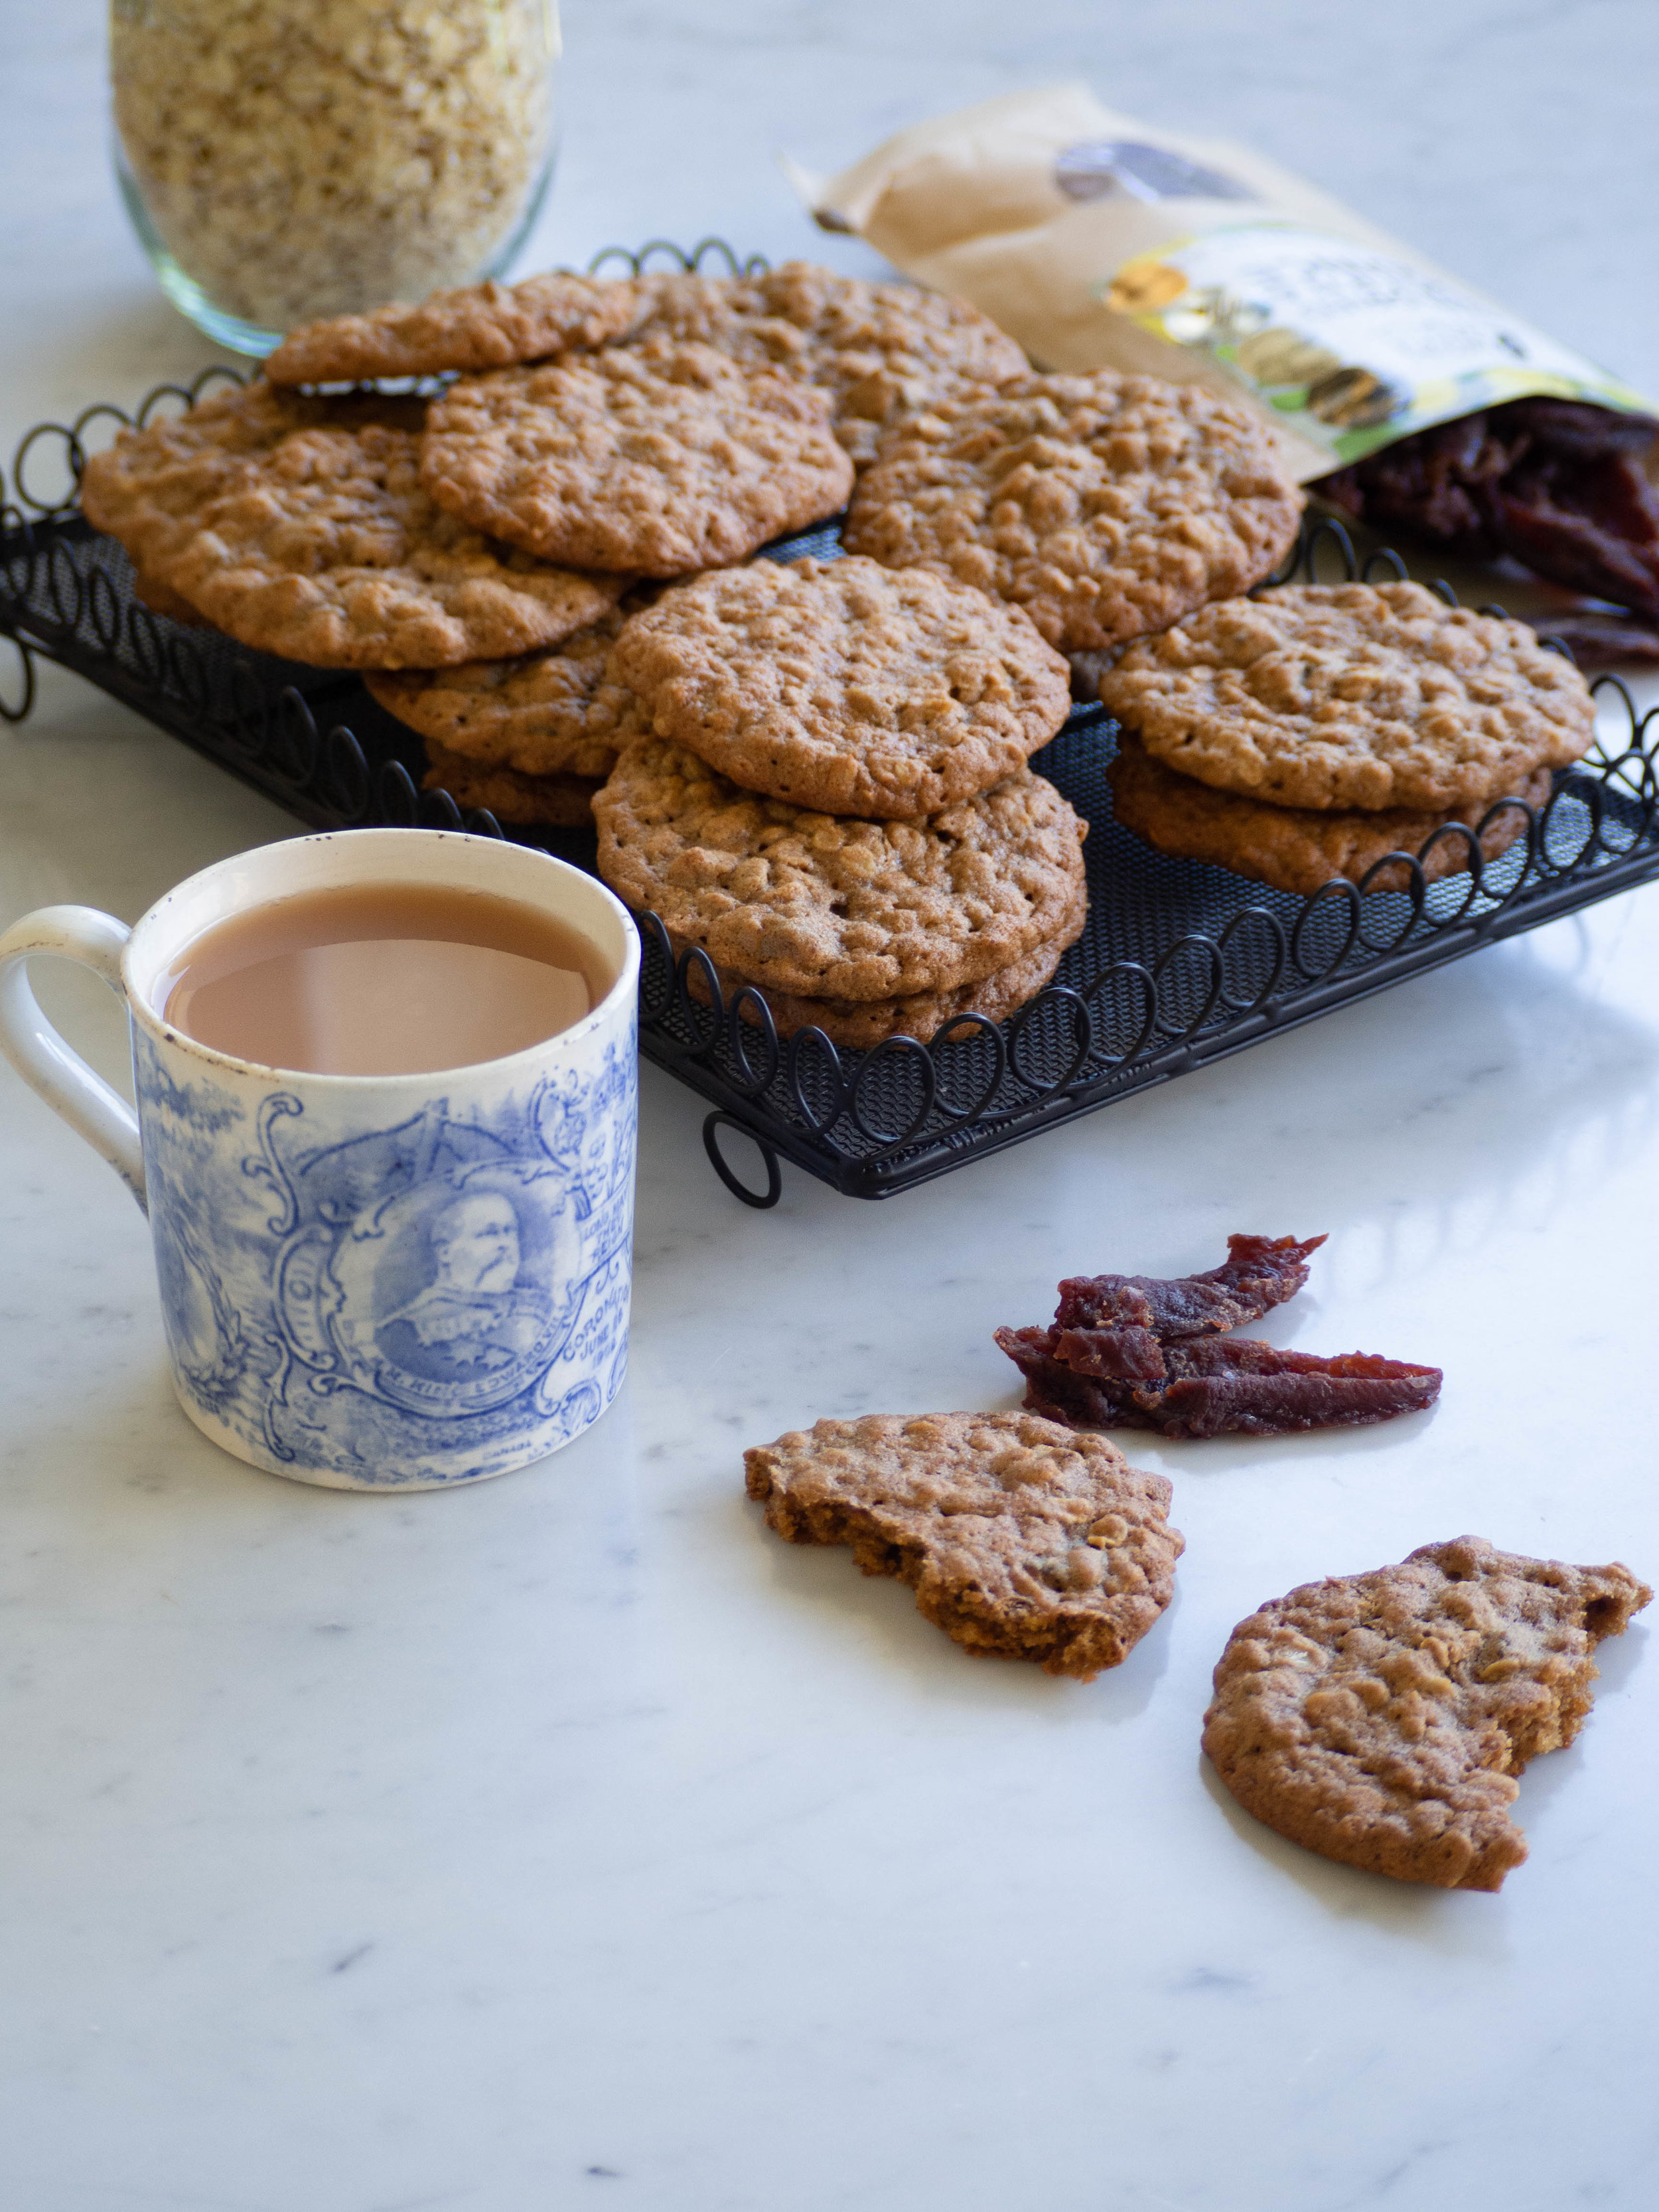 Quince and Almond Biscuits